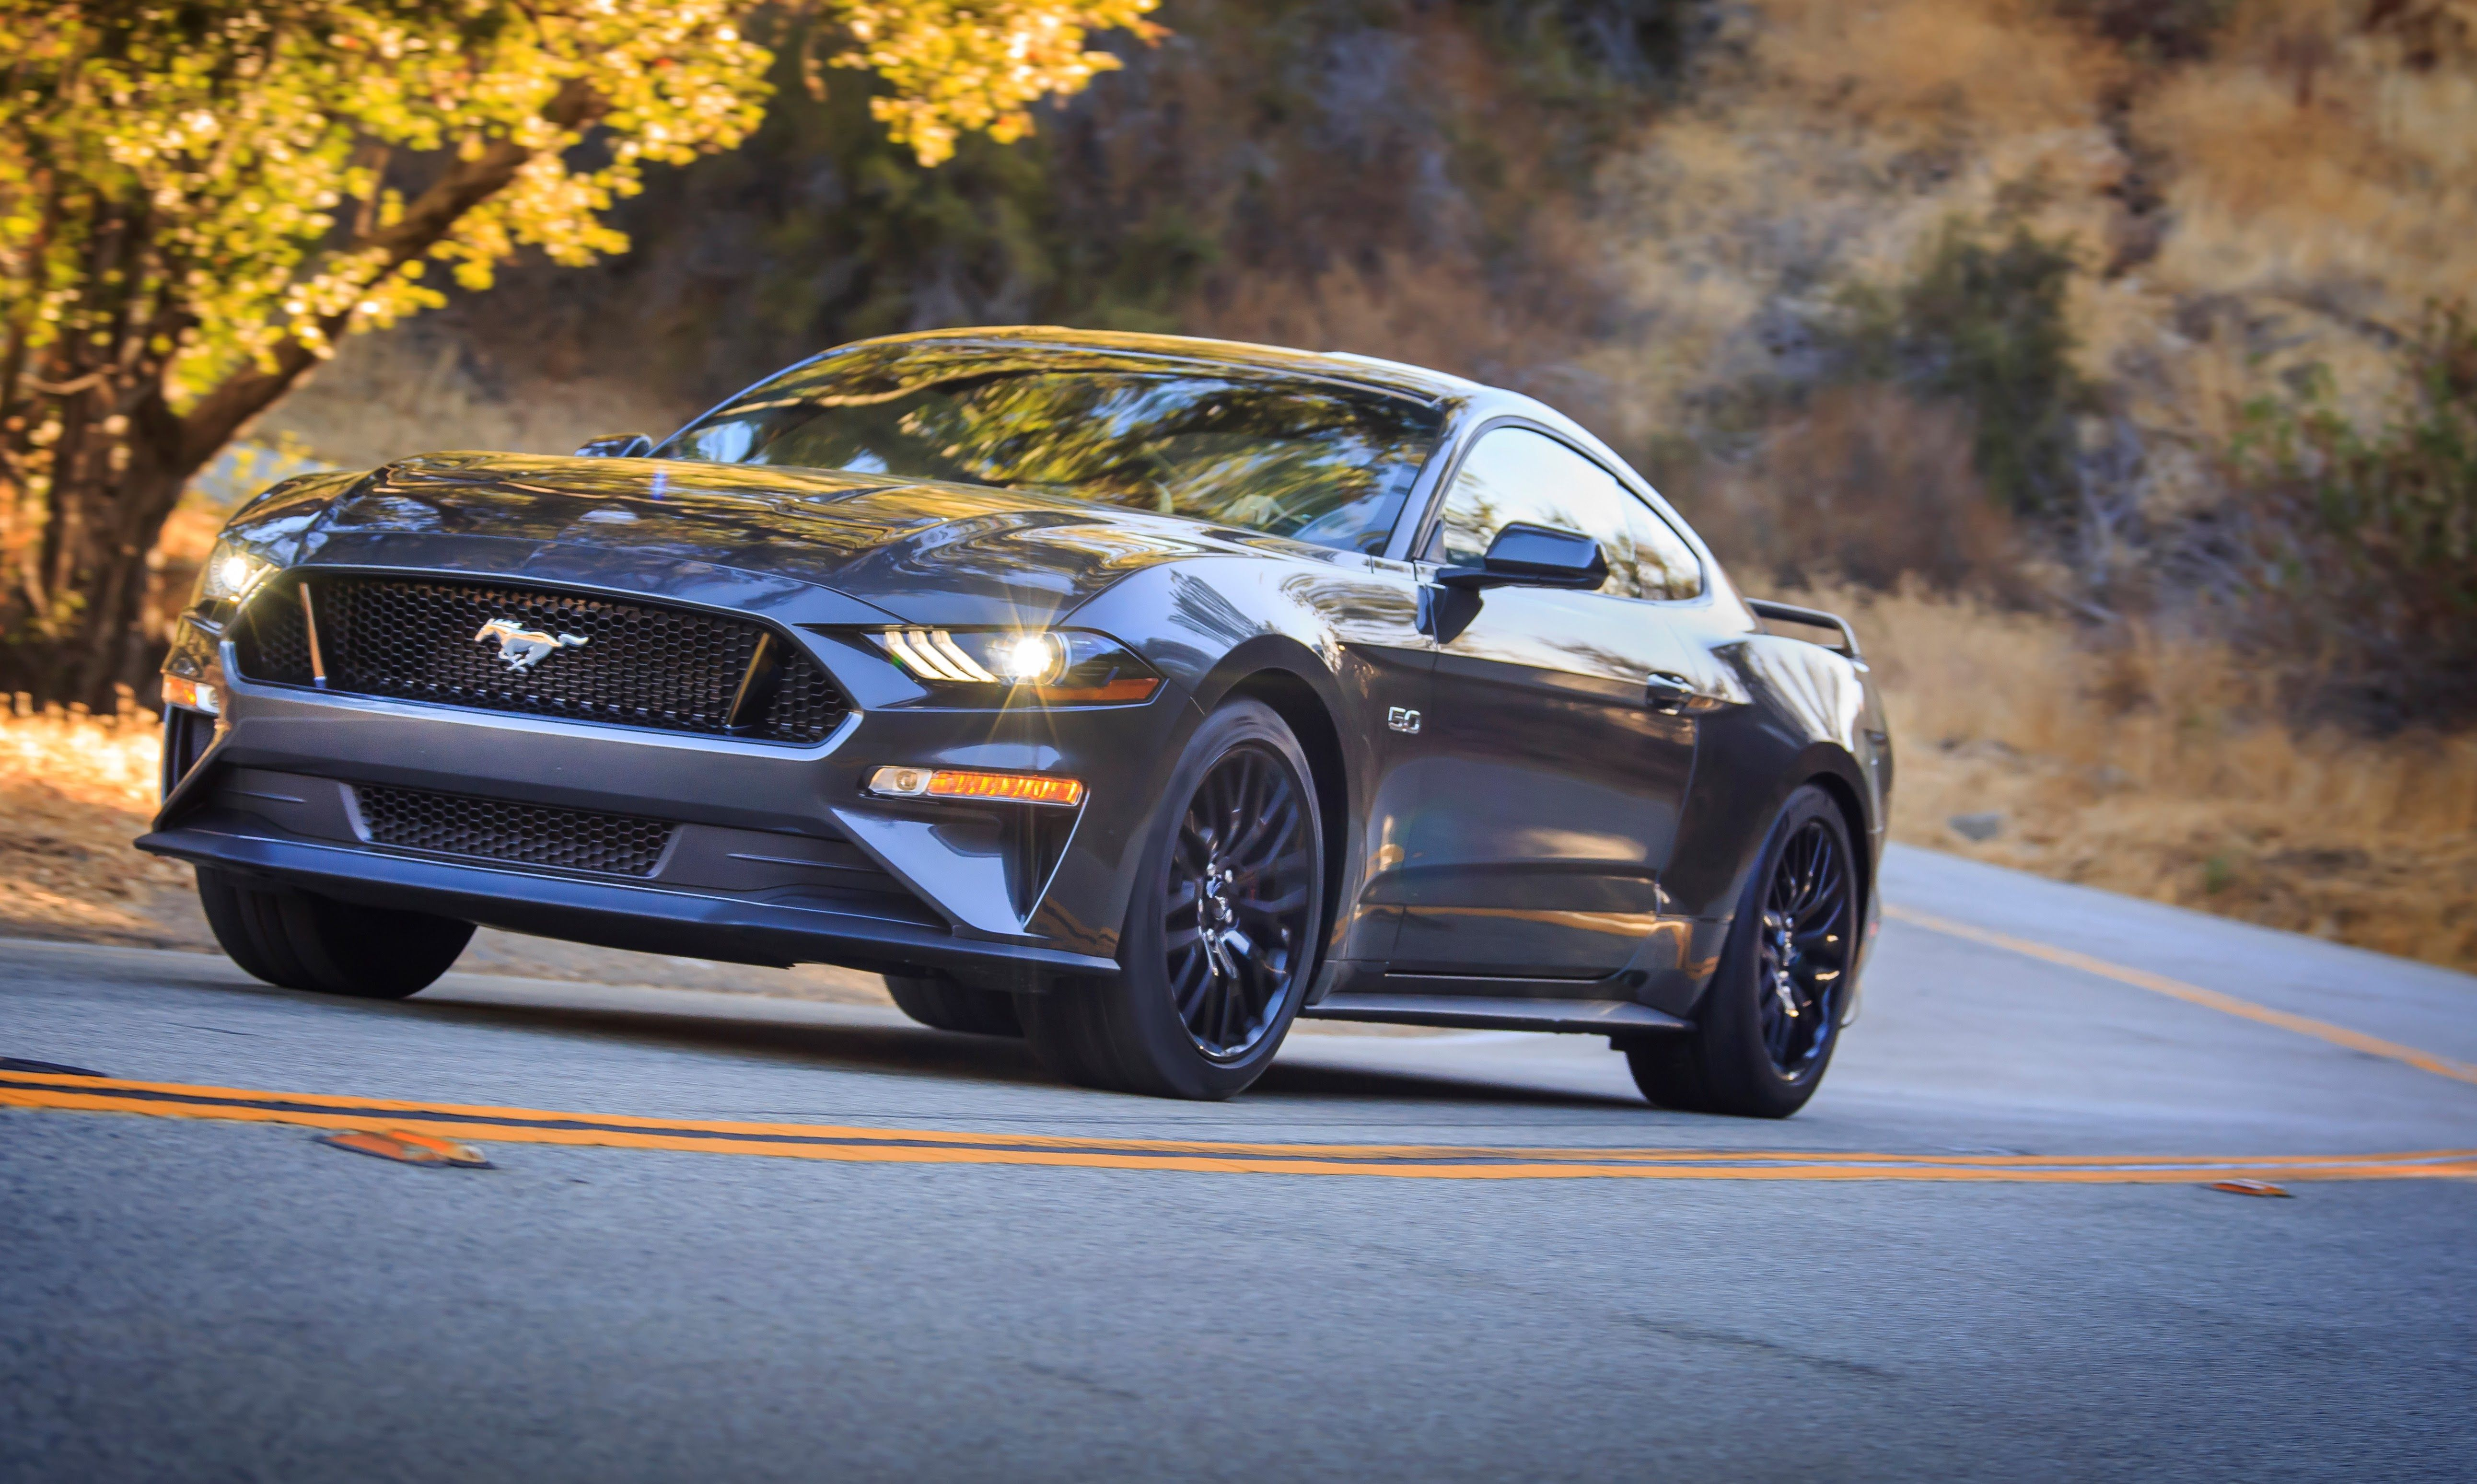 2018 ford mustang gt review road test for the new 2018 mustang gt2018 ford mustang gt